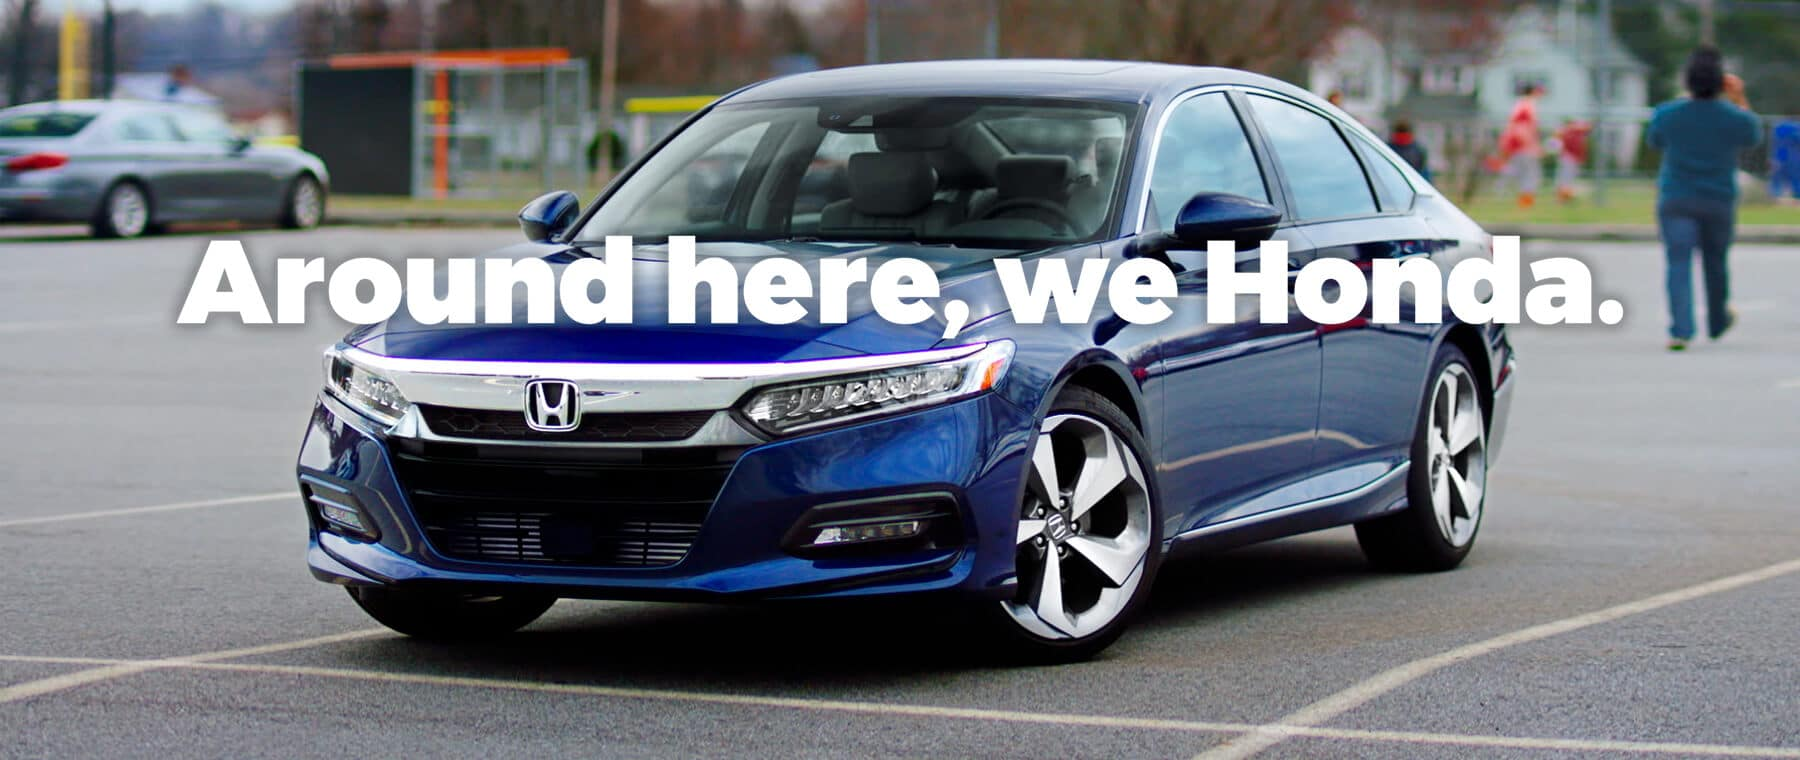 Around Here, We Honda New England Honda Dealers